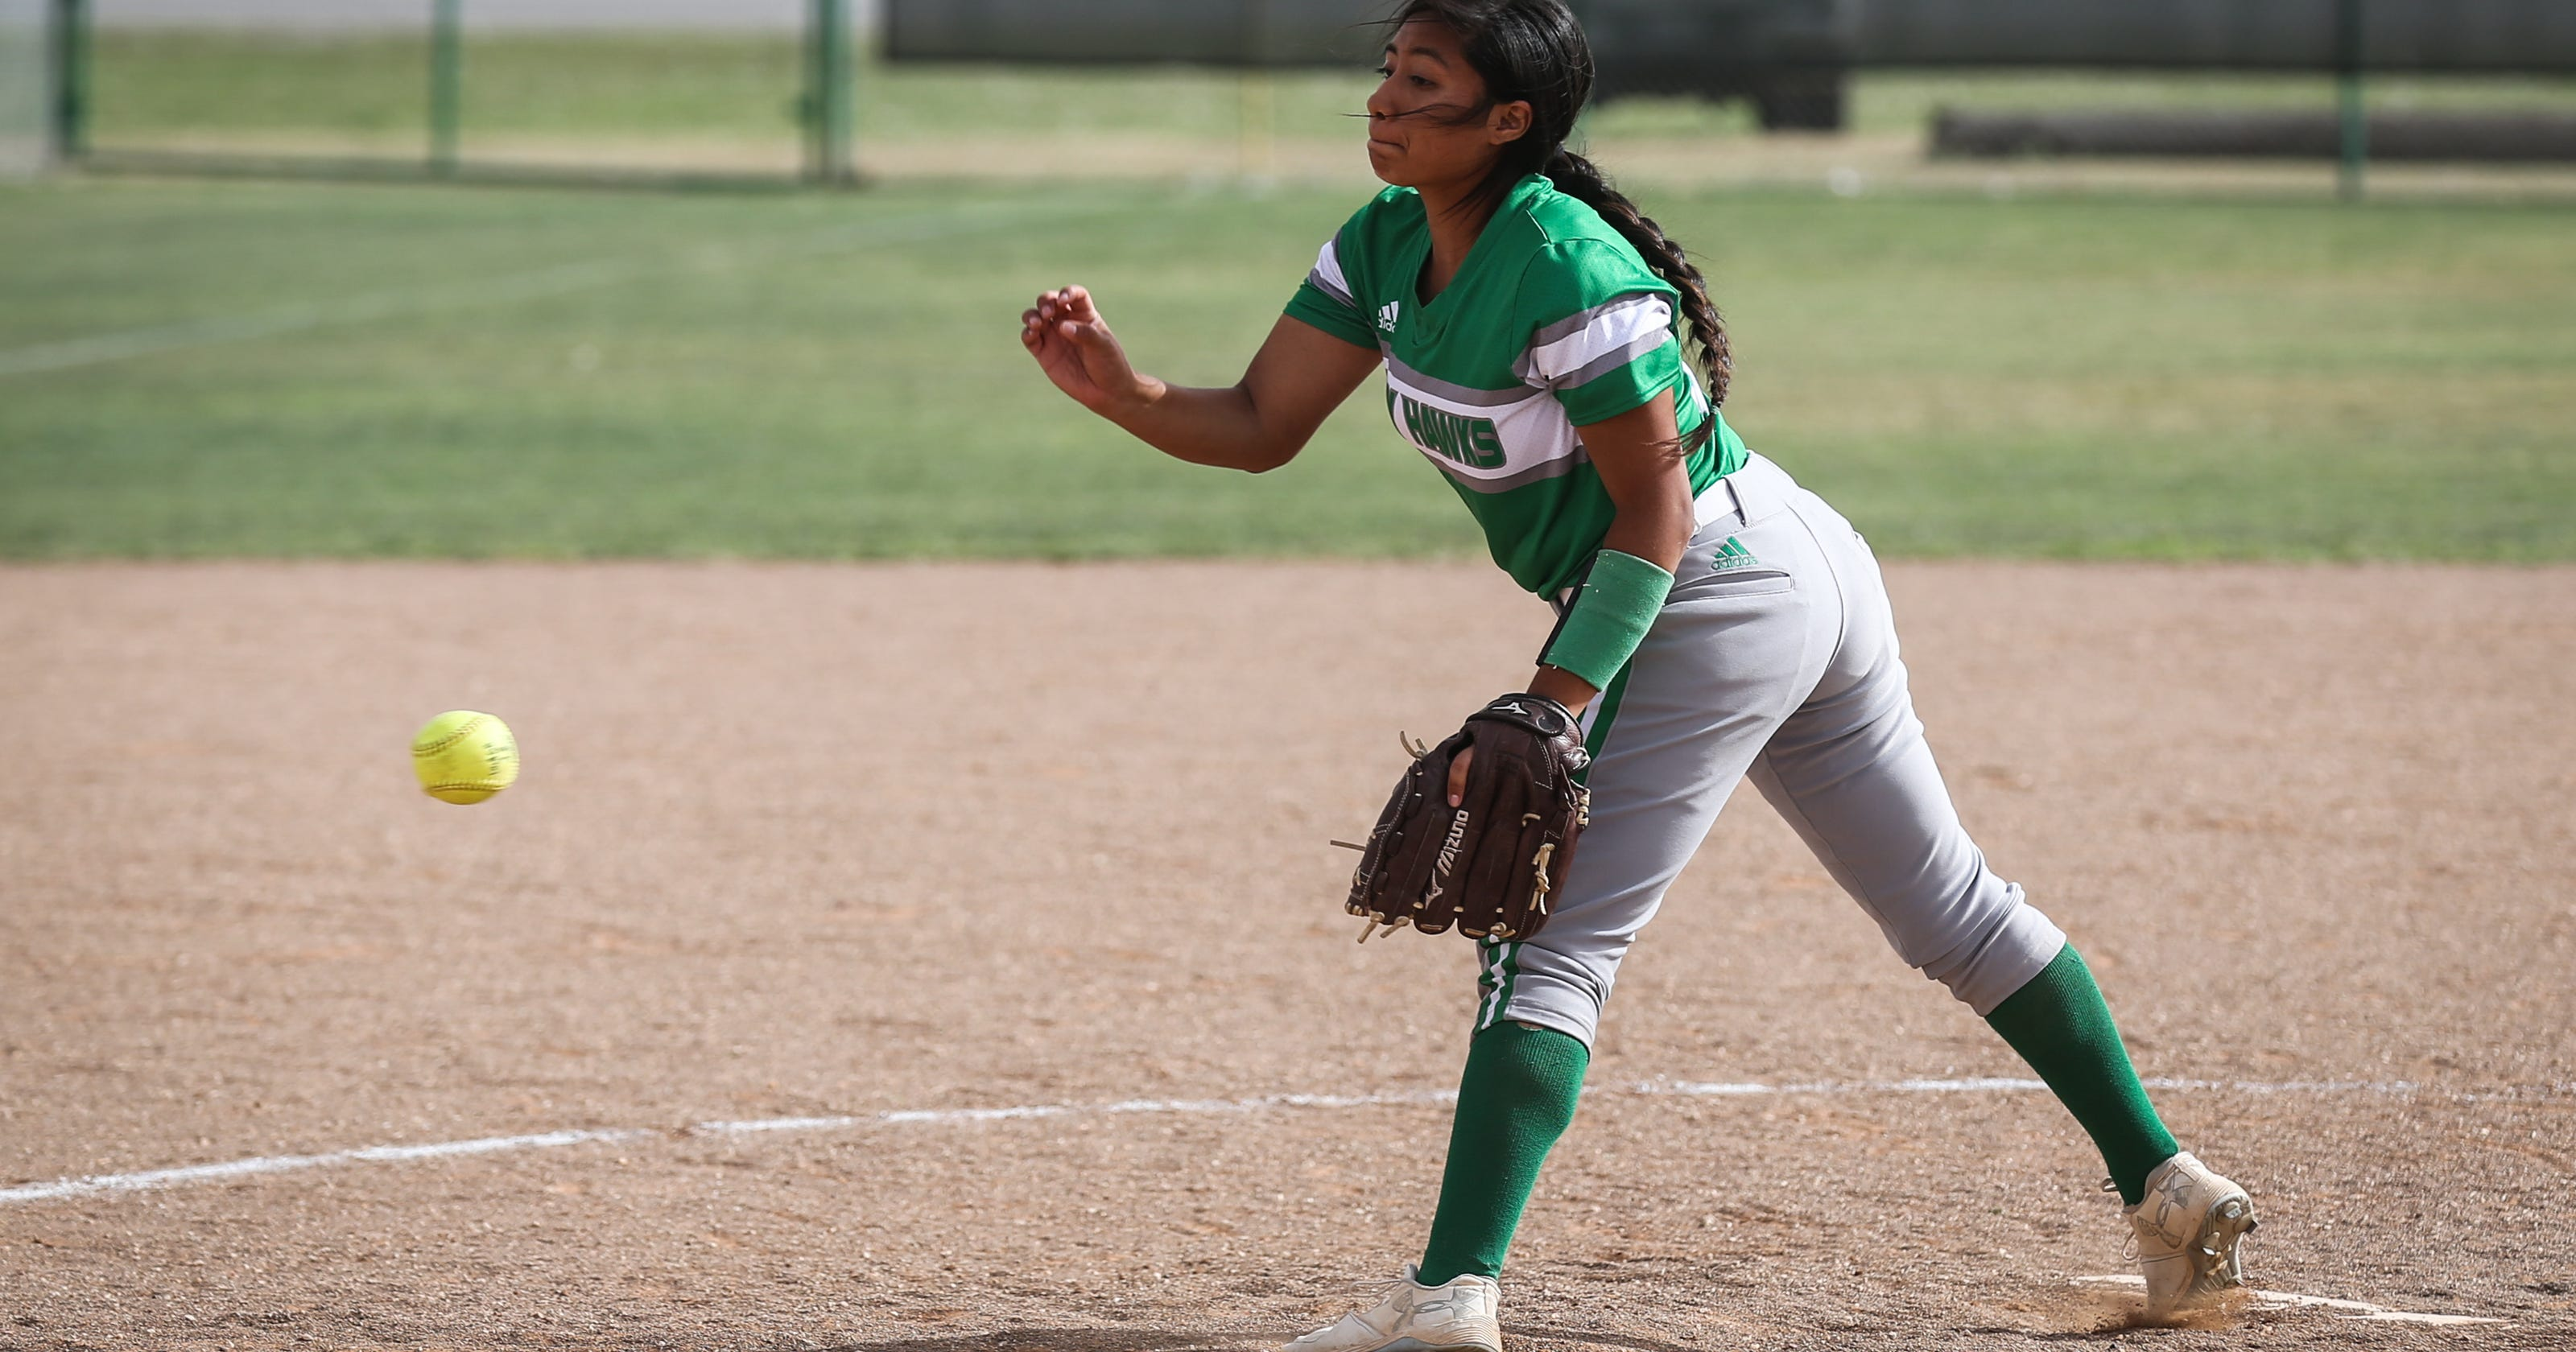 Wall rallies past Ballinger to win District 4-3A softball title